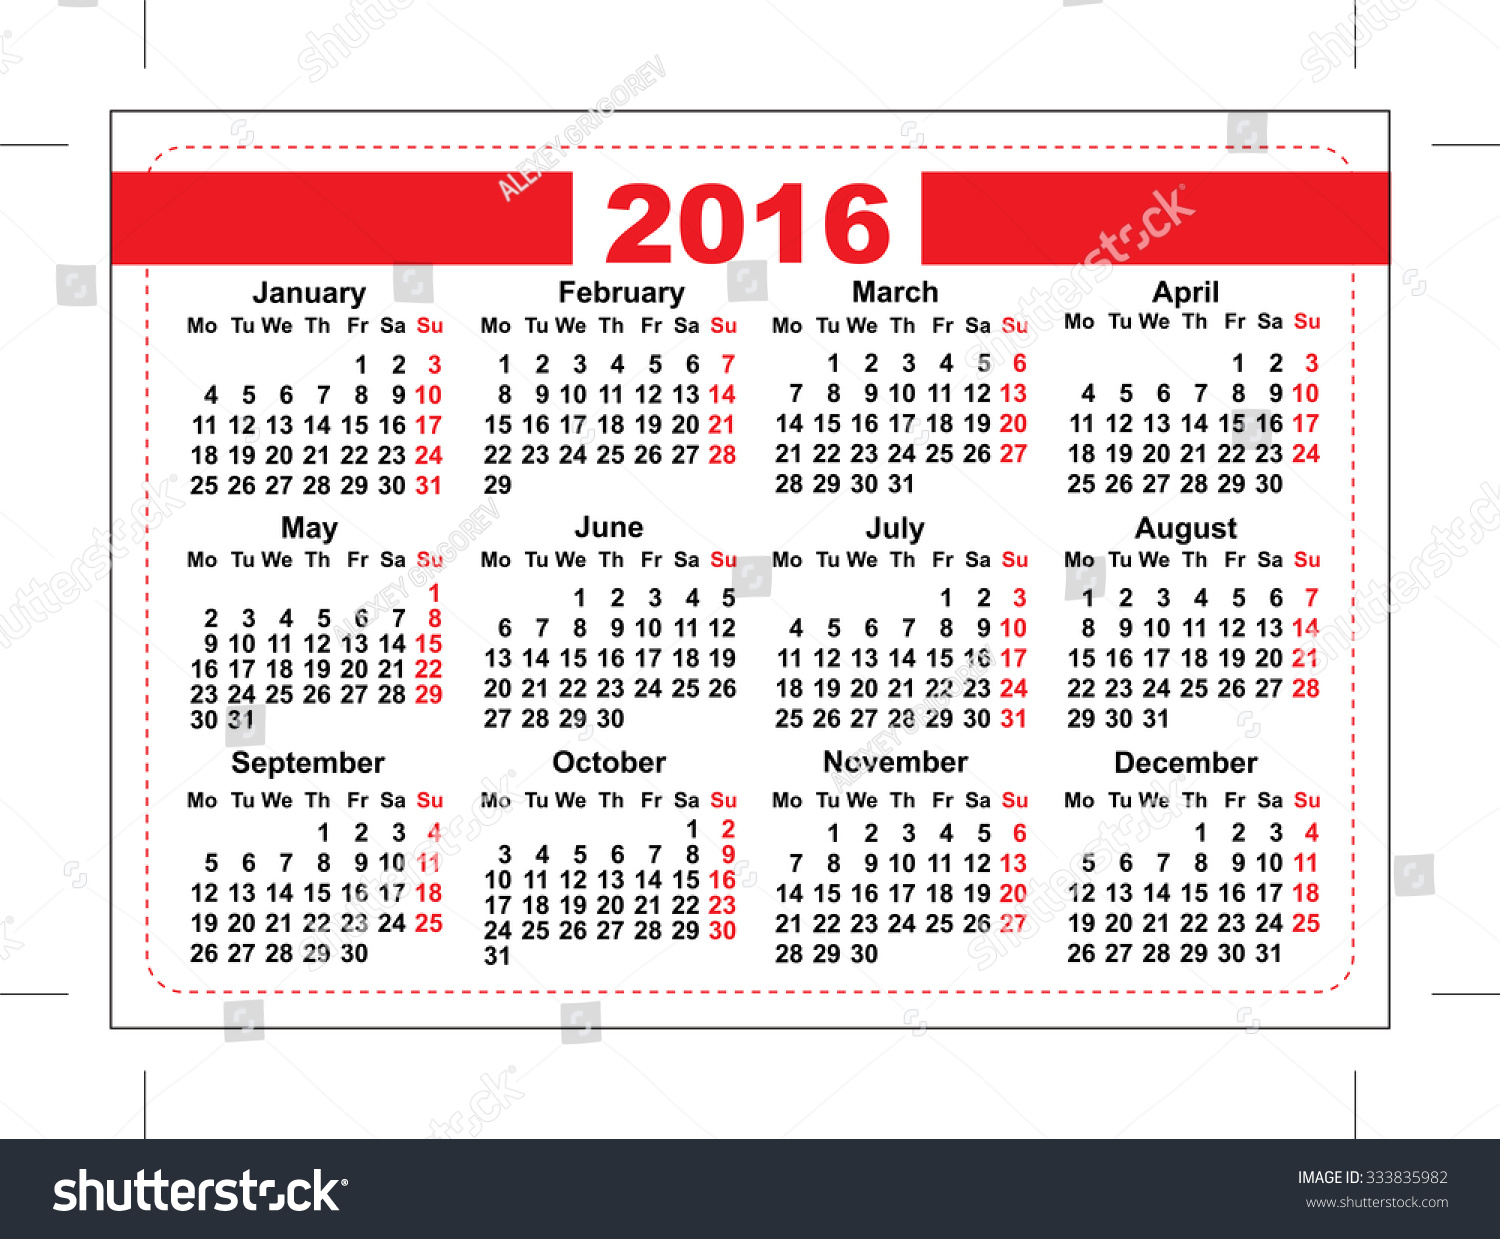 pocket schedule template - 2016 pocket calendar template grid horizontal stock